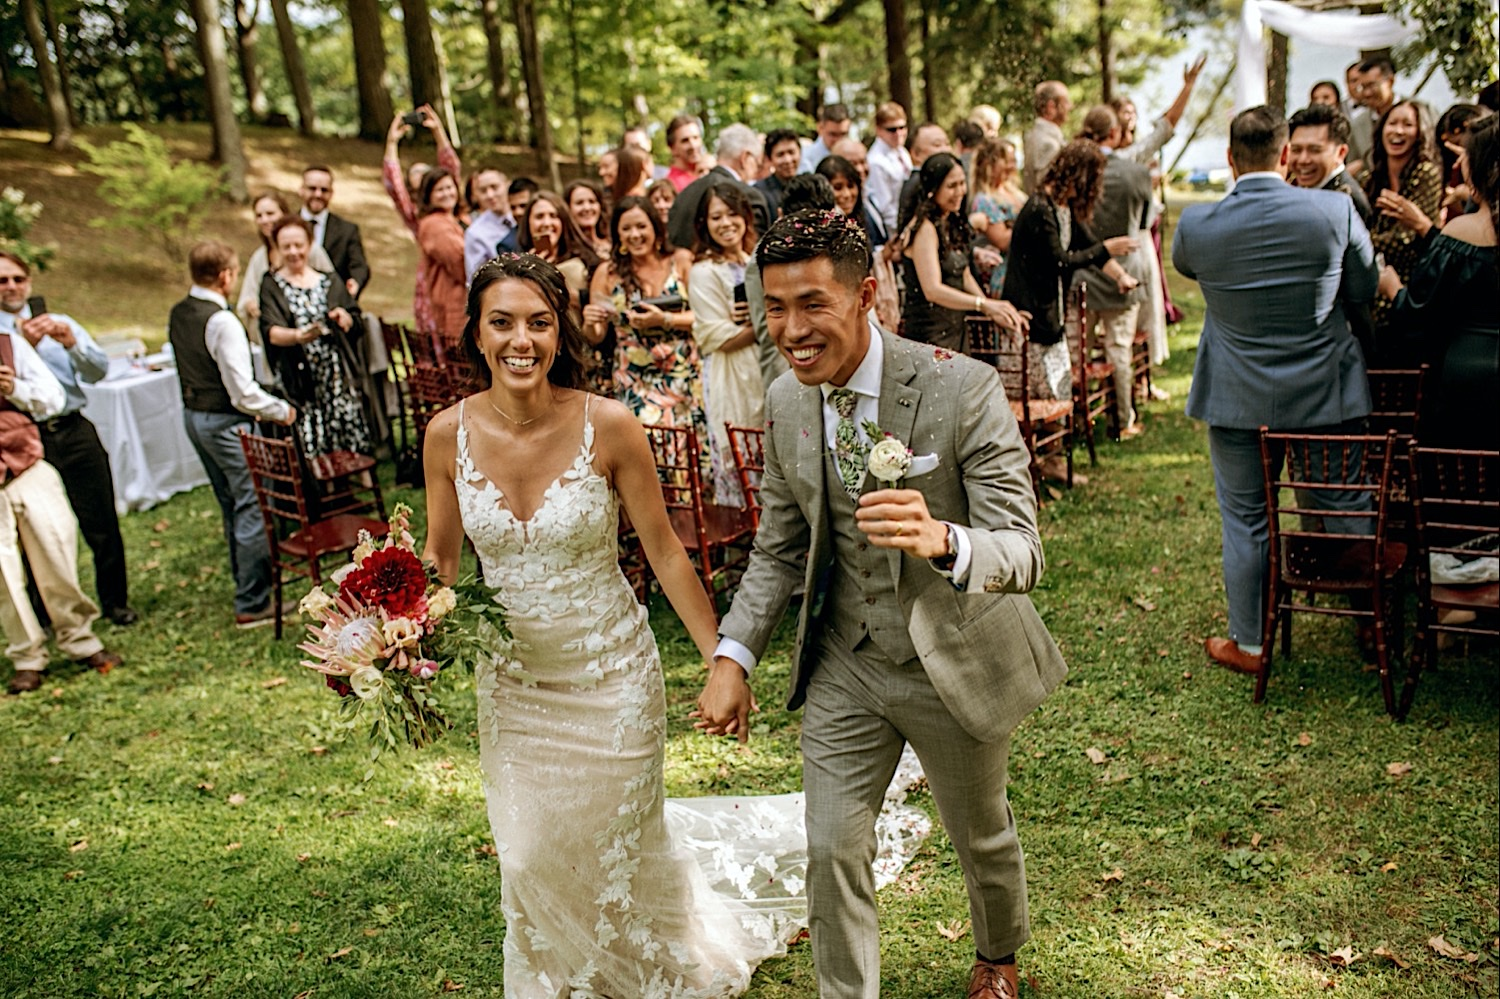 Bomoseen Lodge Wedding - A smiling bride and groom exit the ceremony surrounded by their guests